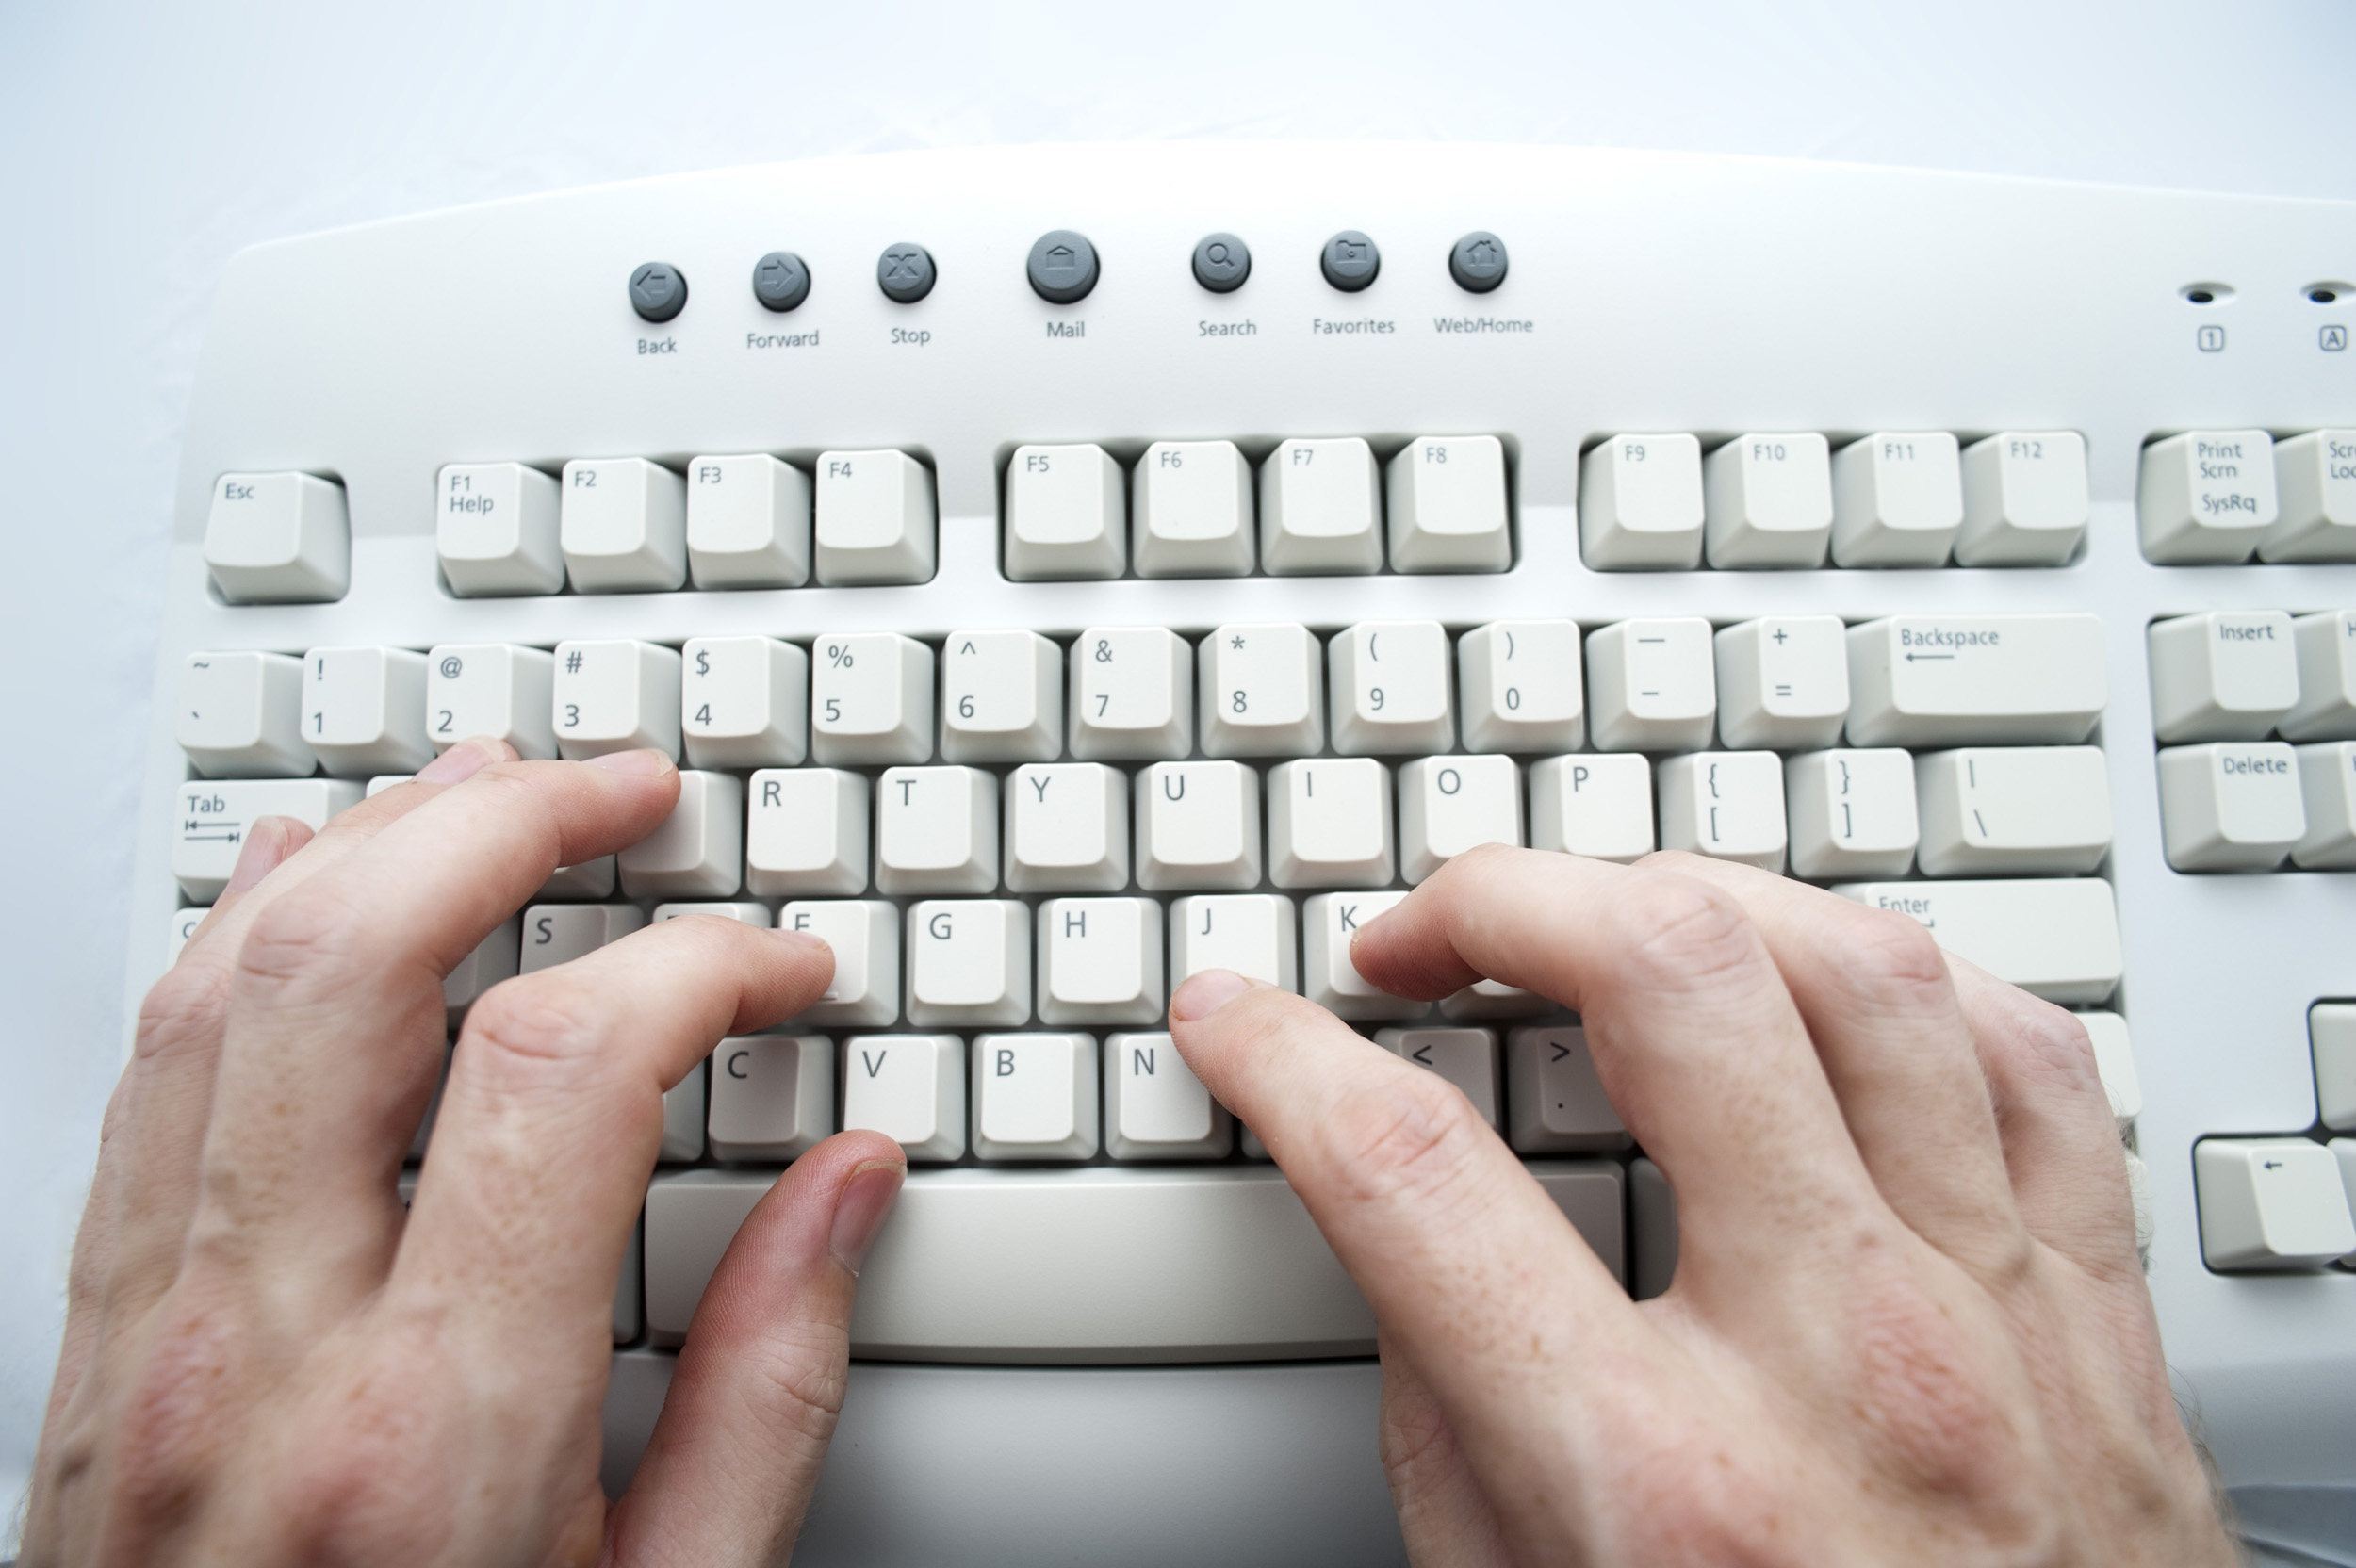 Fingers typing at a computer keyboard